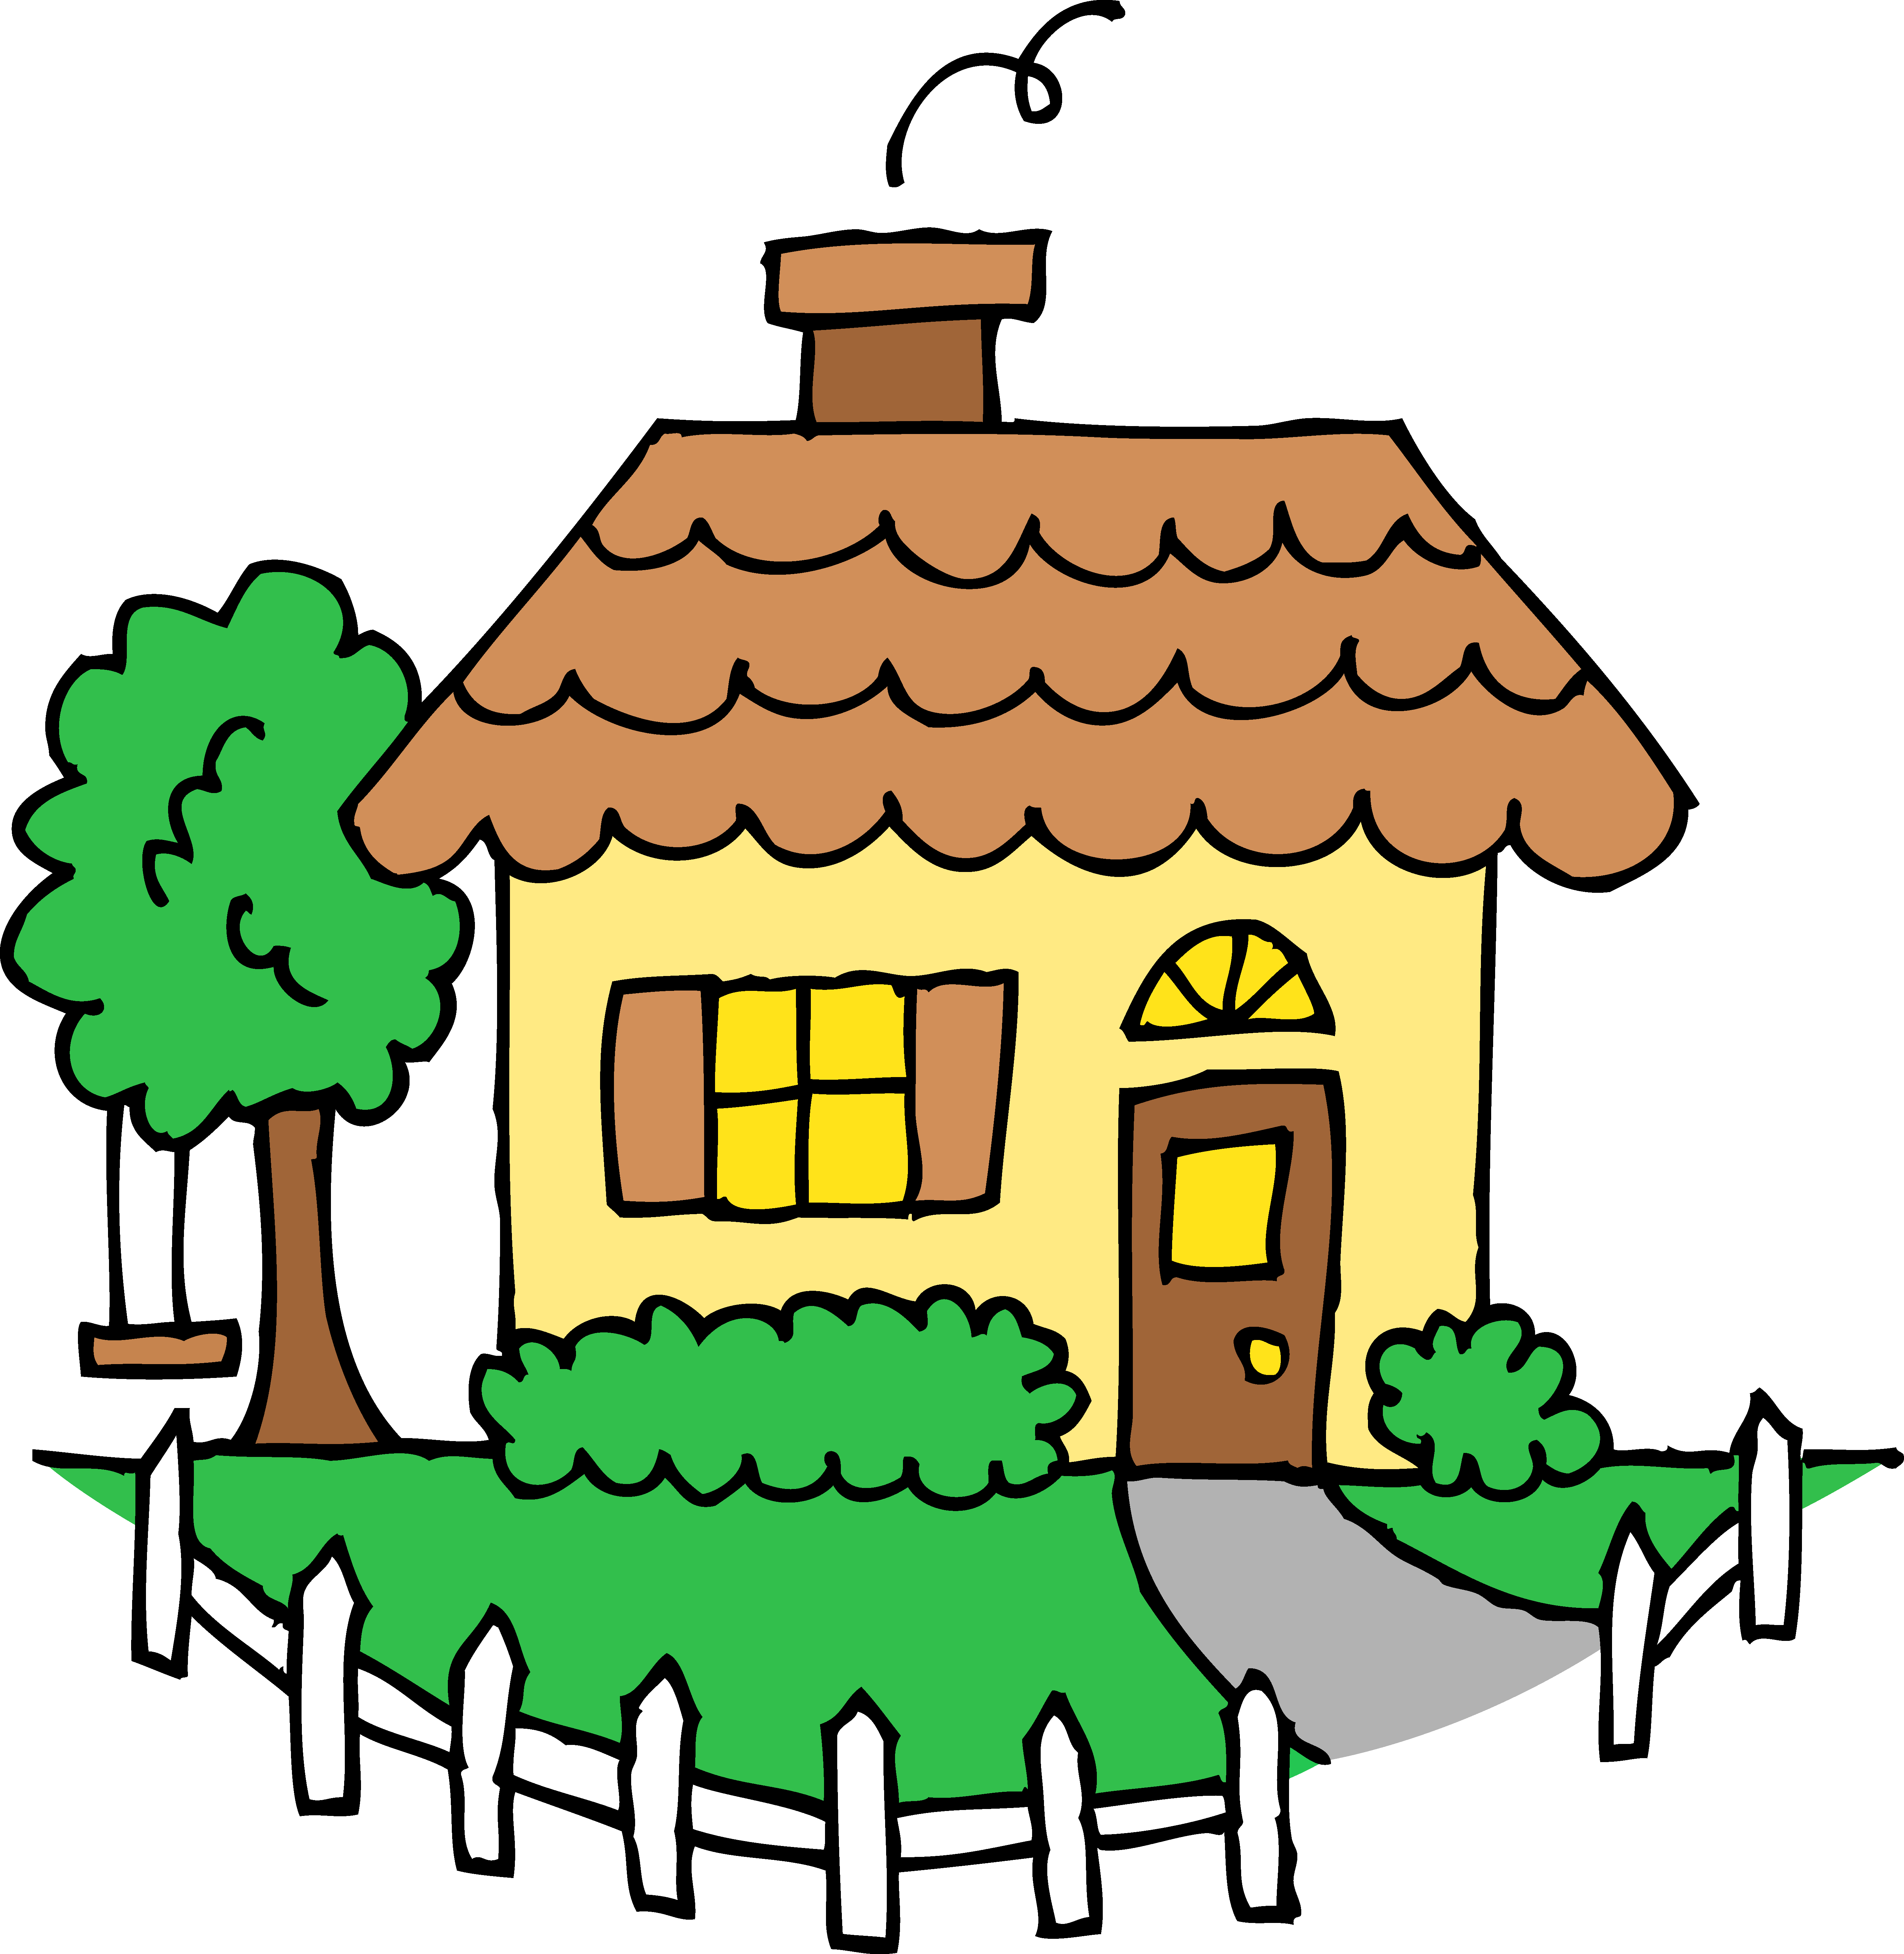 Clip Art Of House - Tumundografico